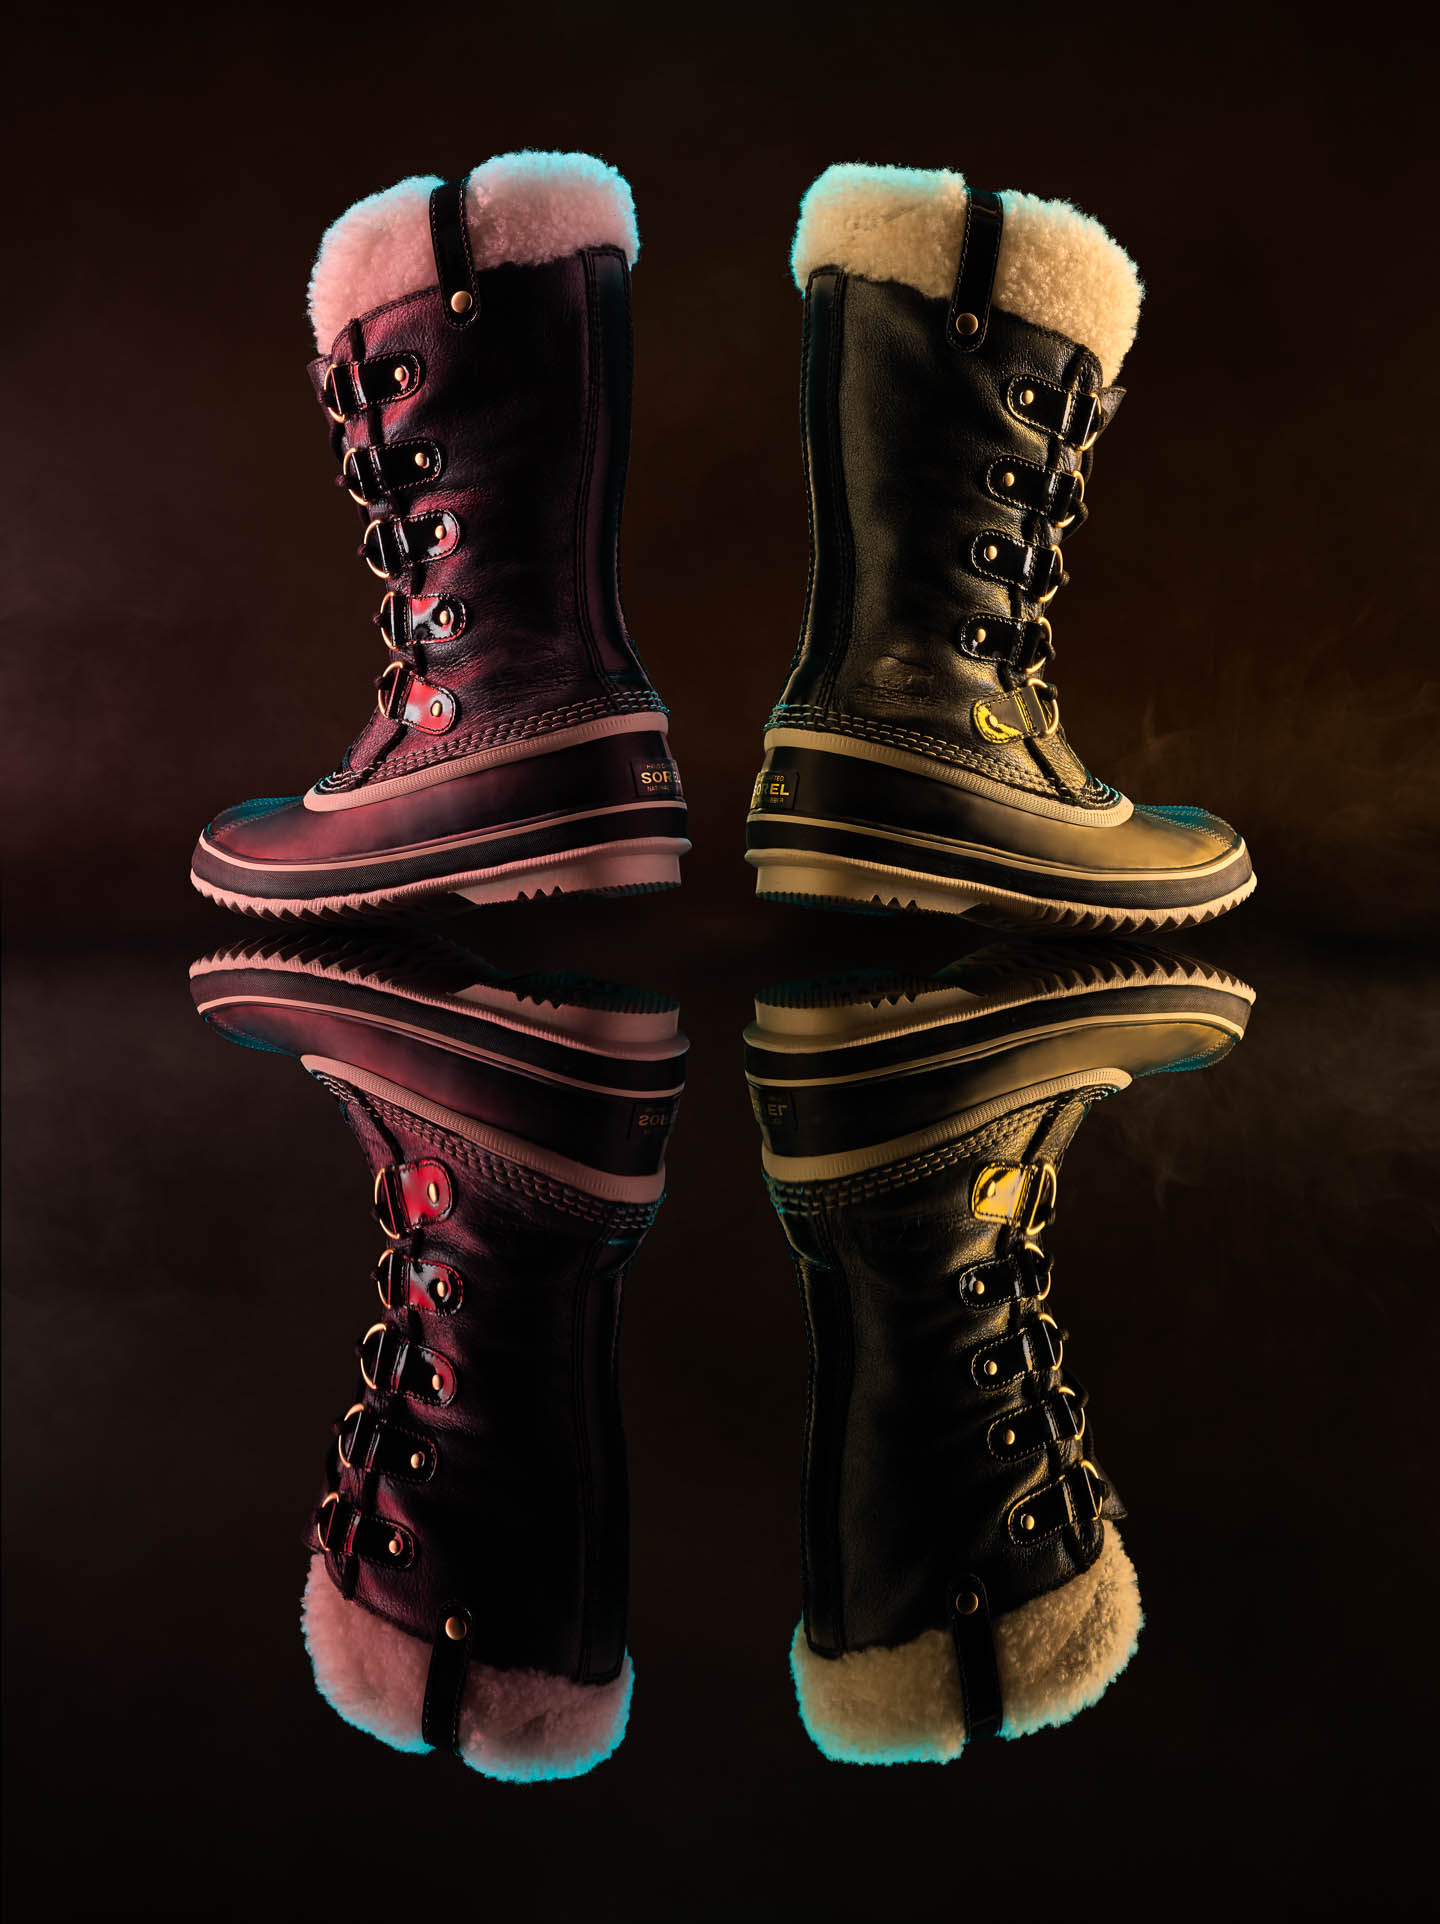 Sorel fashion footwear by Steve Temple Photography